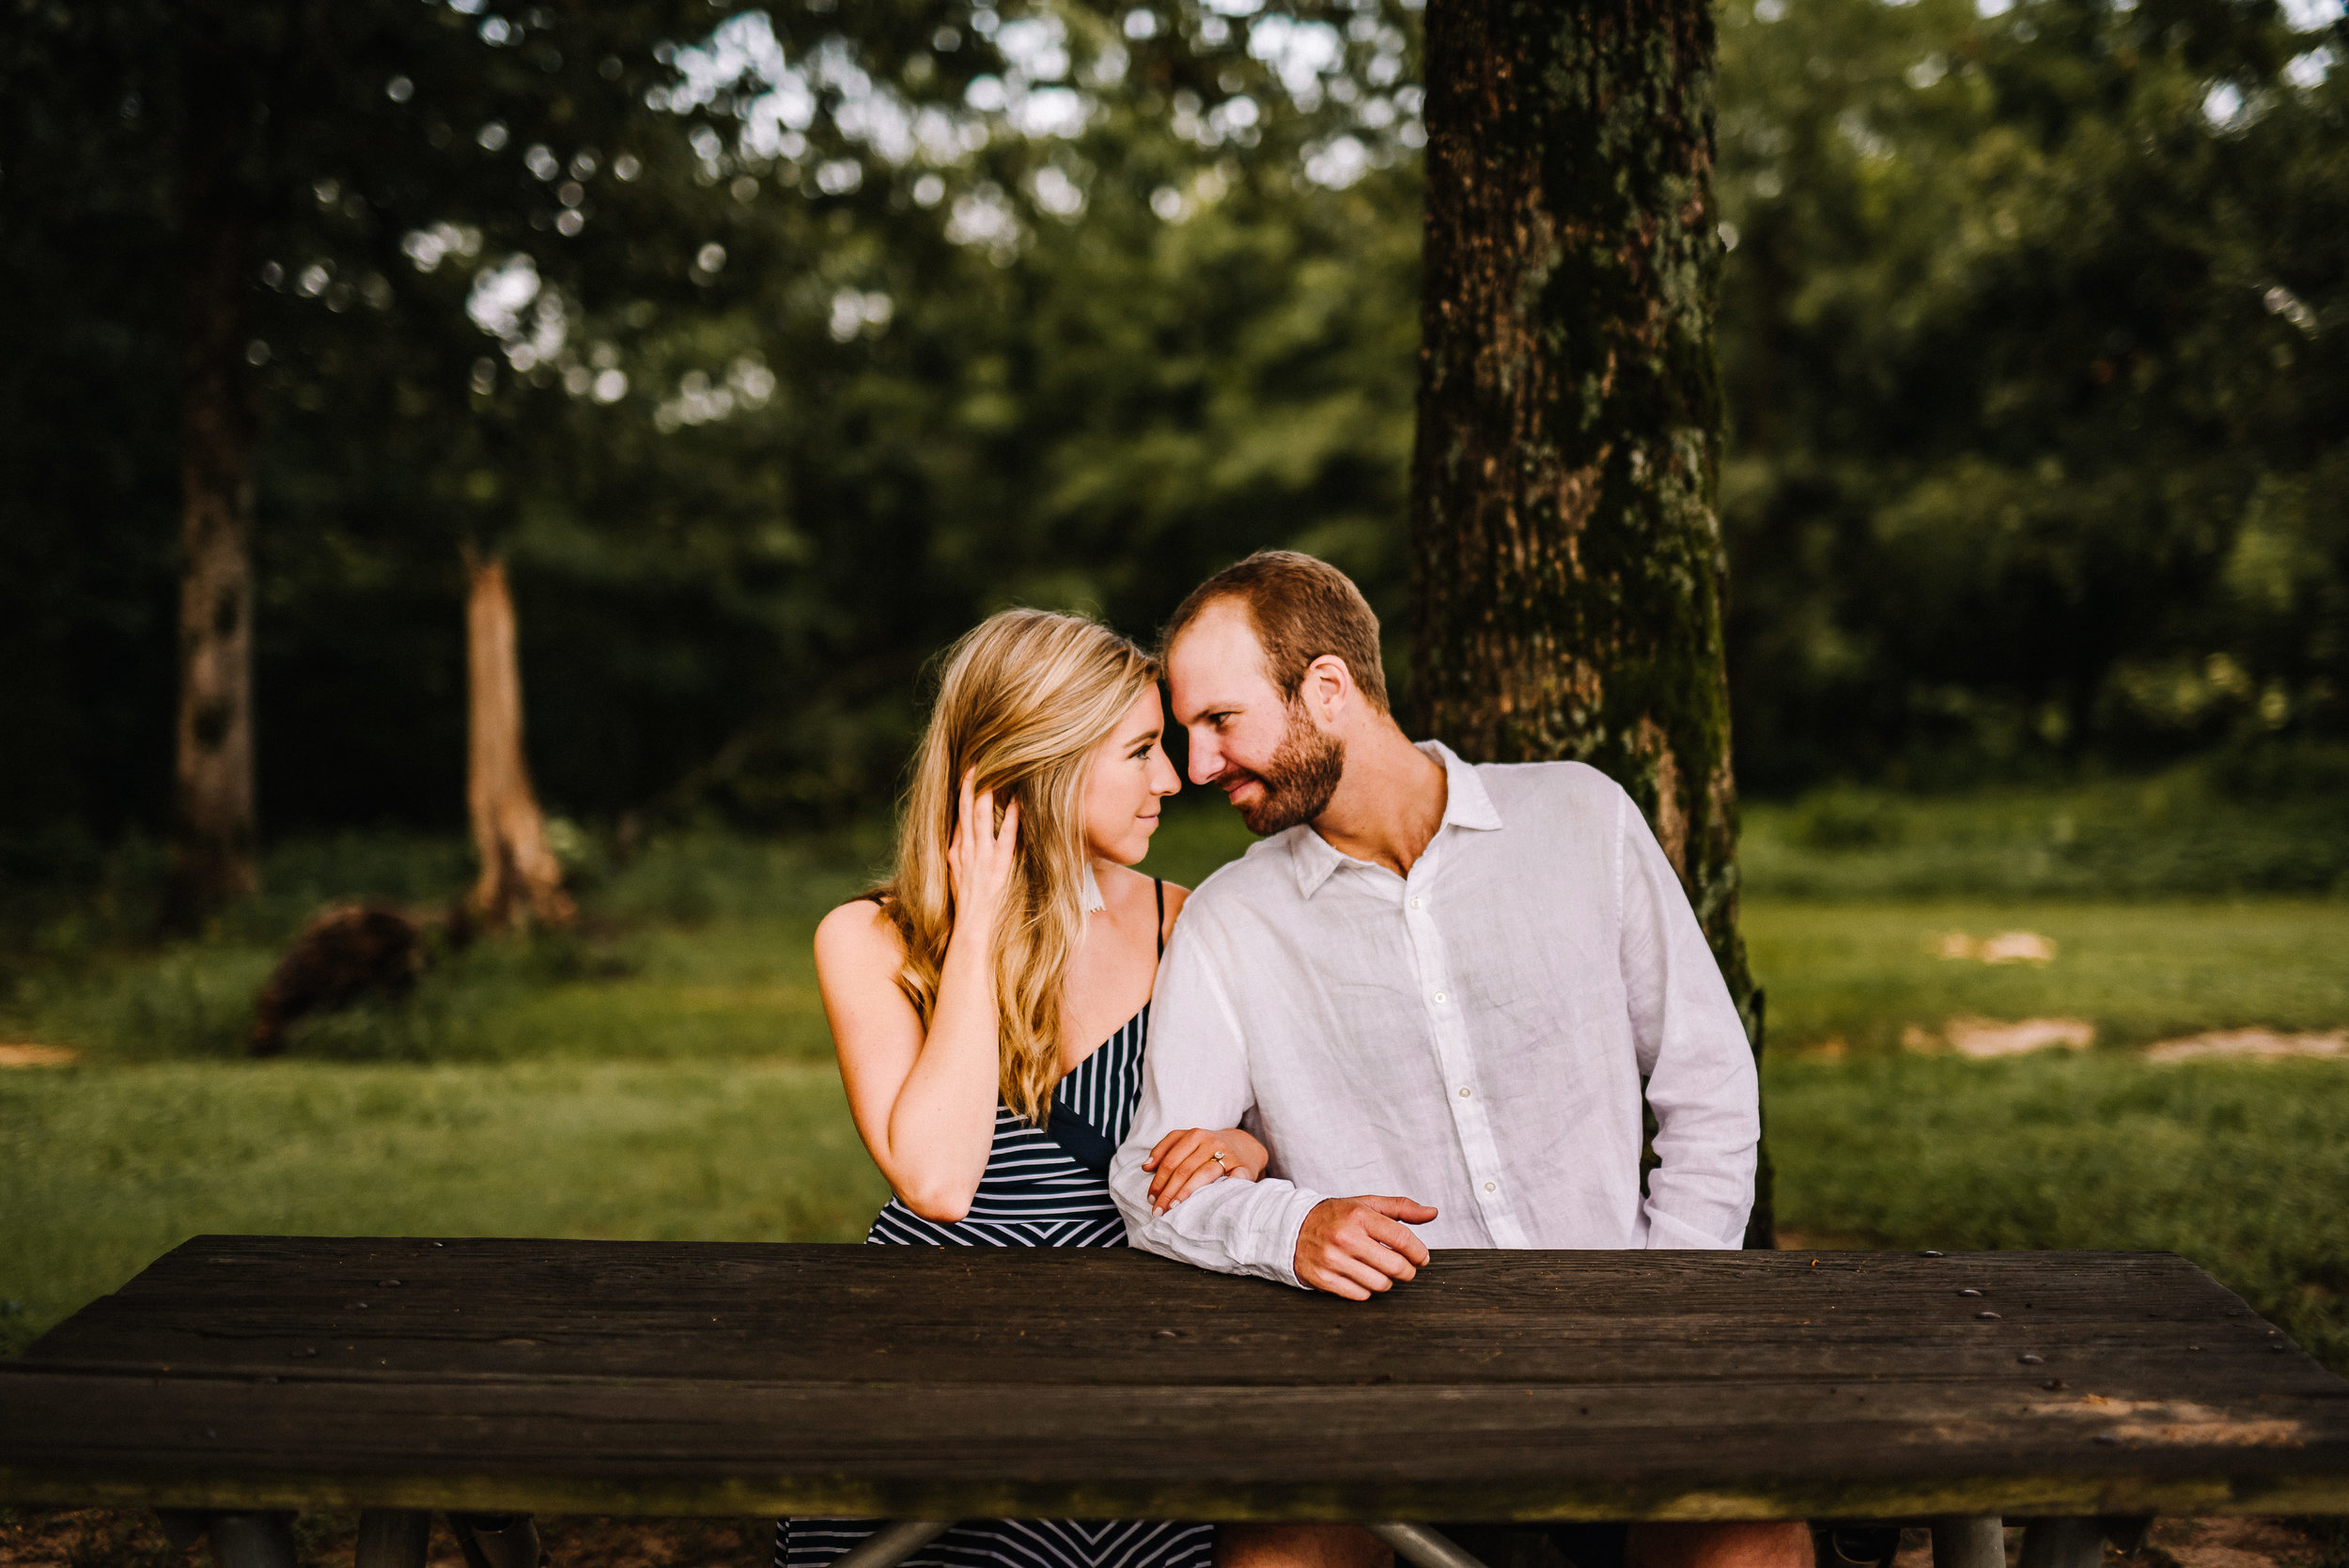 Meredith & Michael_Broad Ave_Shelby Farms_Ashley Benham Photography-158.jpg